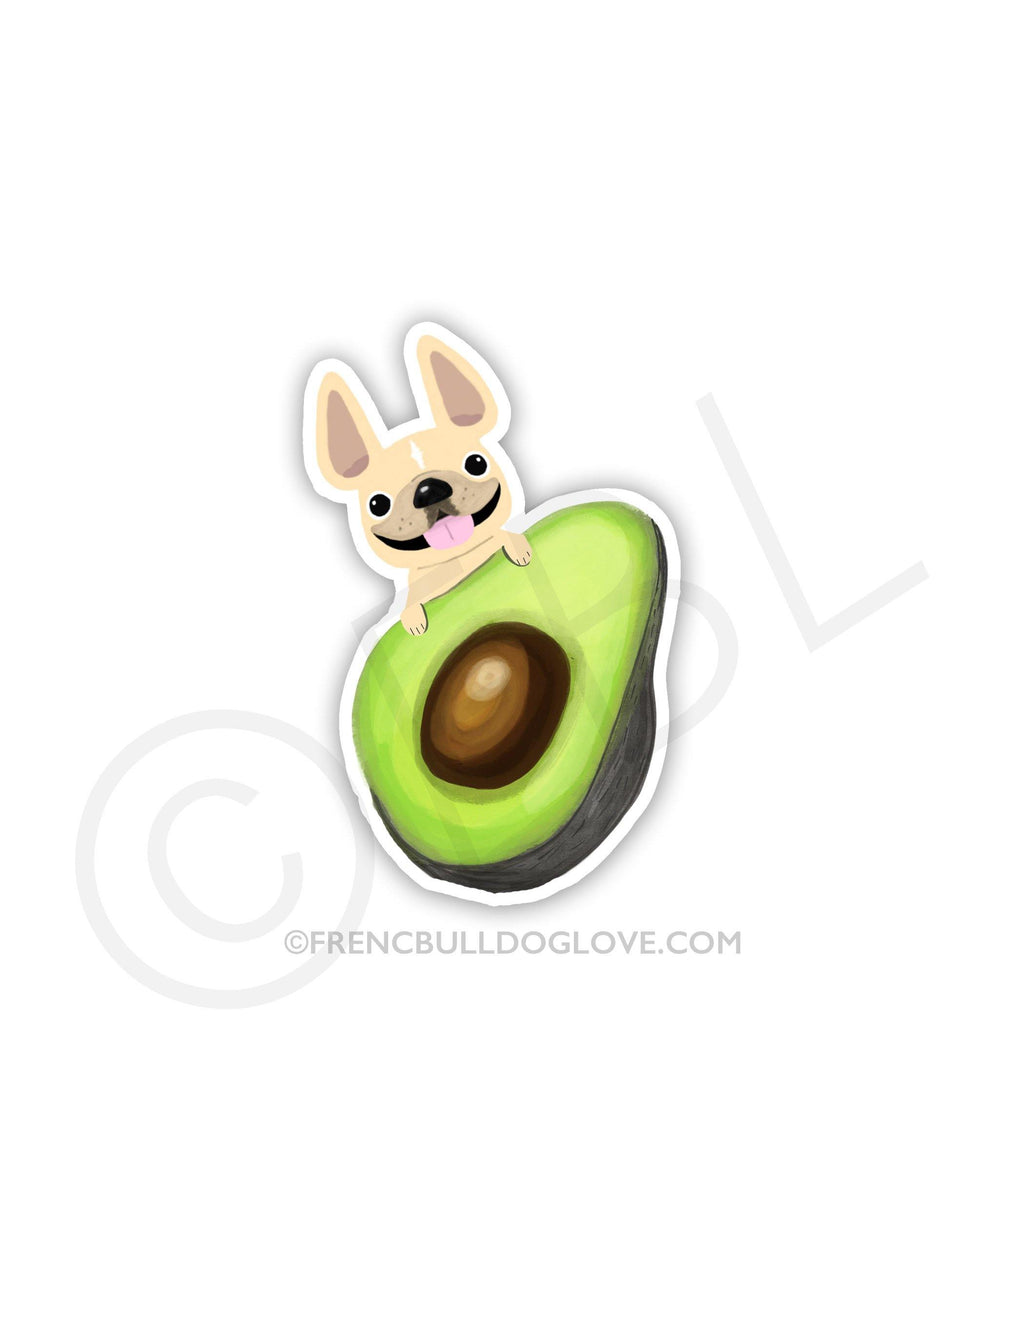 #100DAYPROJECT - AVOCADO LOVE VINYL FRENCH BULLDOG STICKER